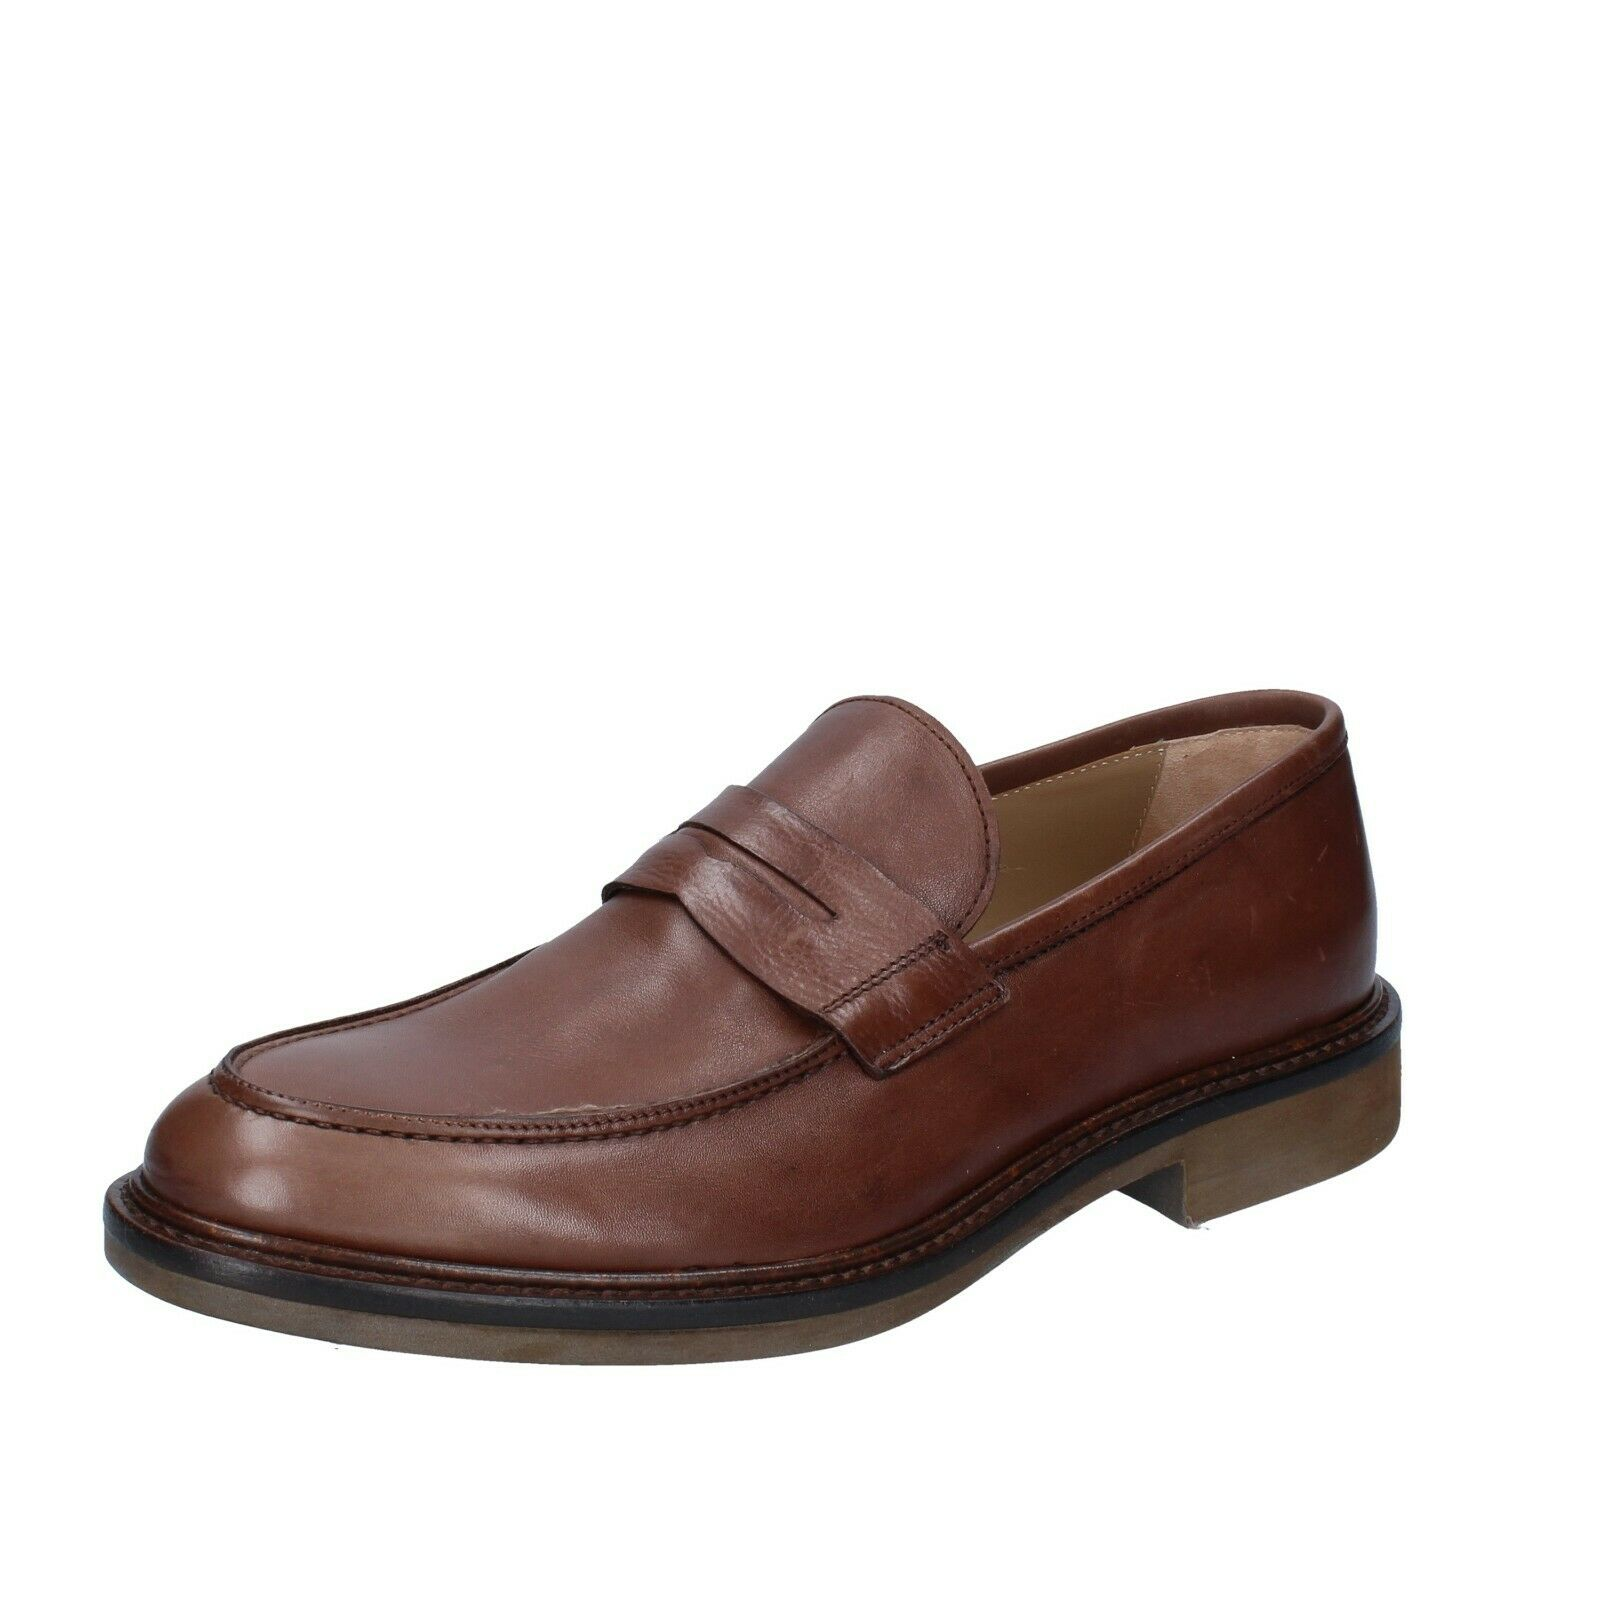 Men's shoes ZENITH 10 () loafers brown leather BS621-43